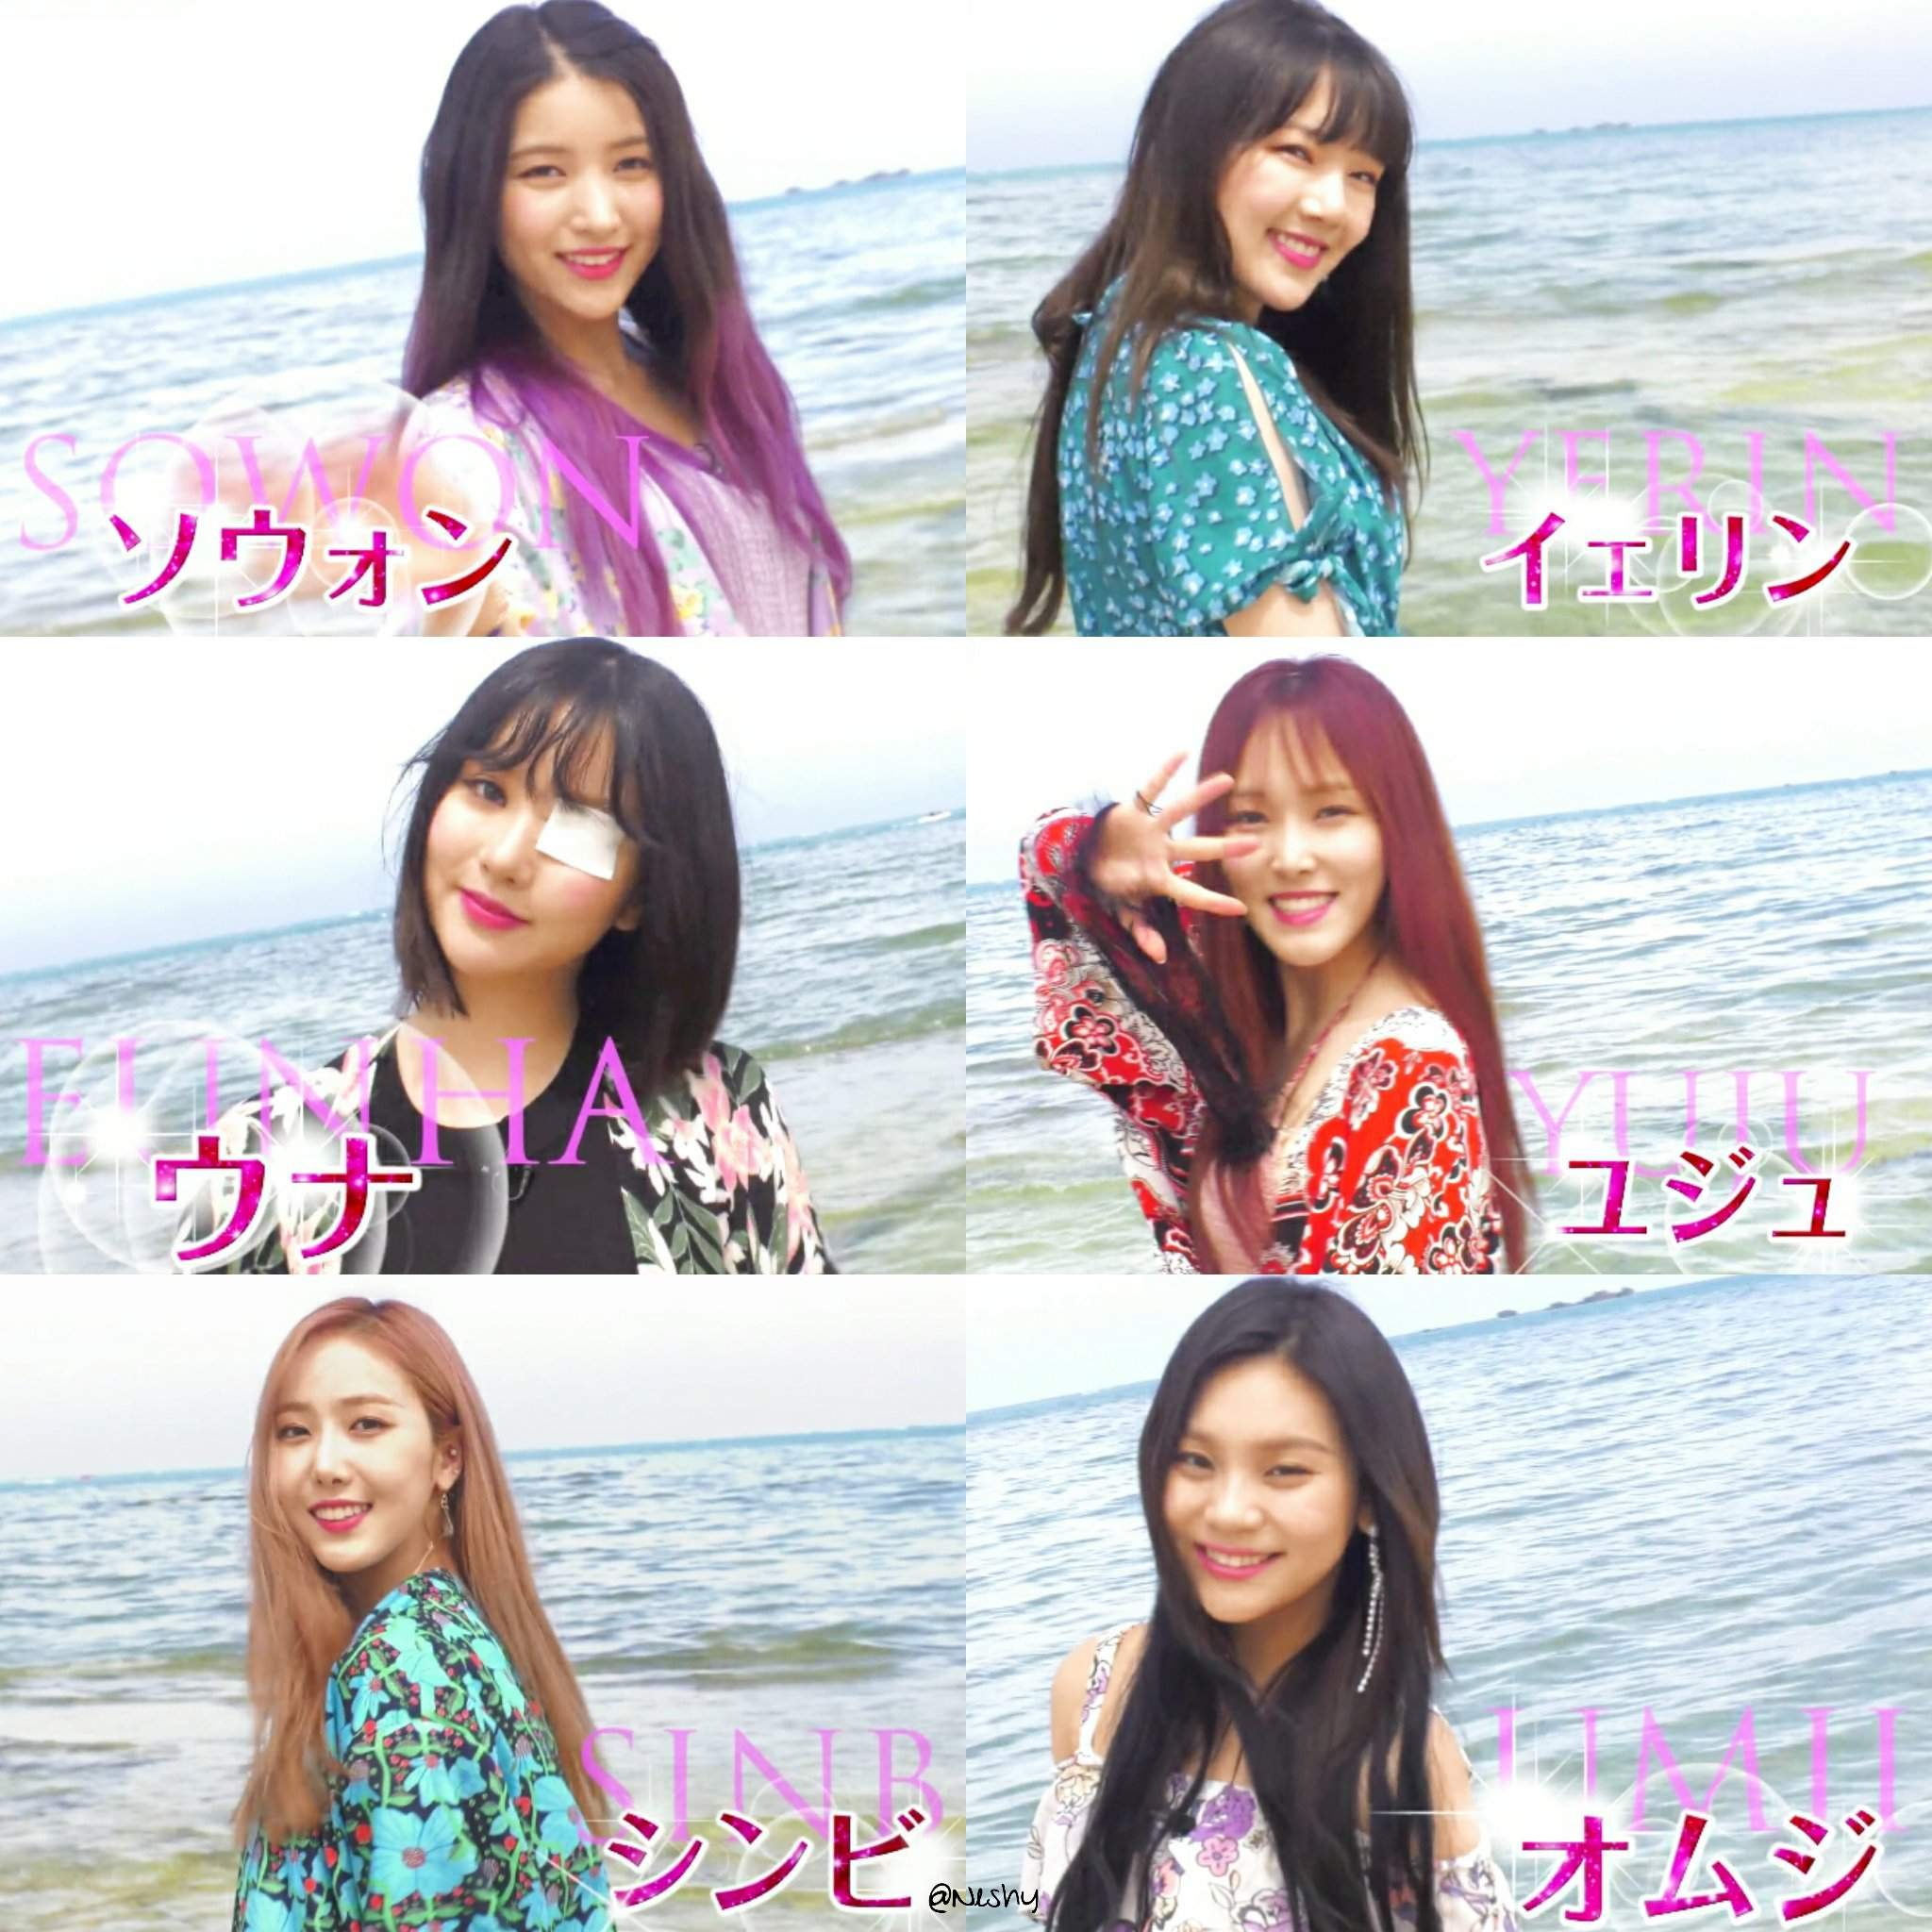 GFRIEND Summer Vacation in Okinawa